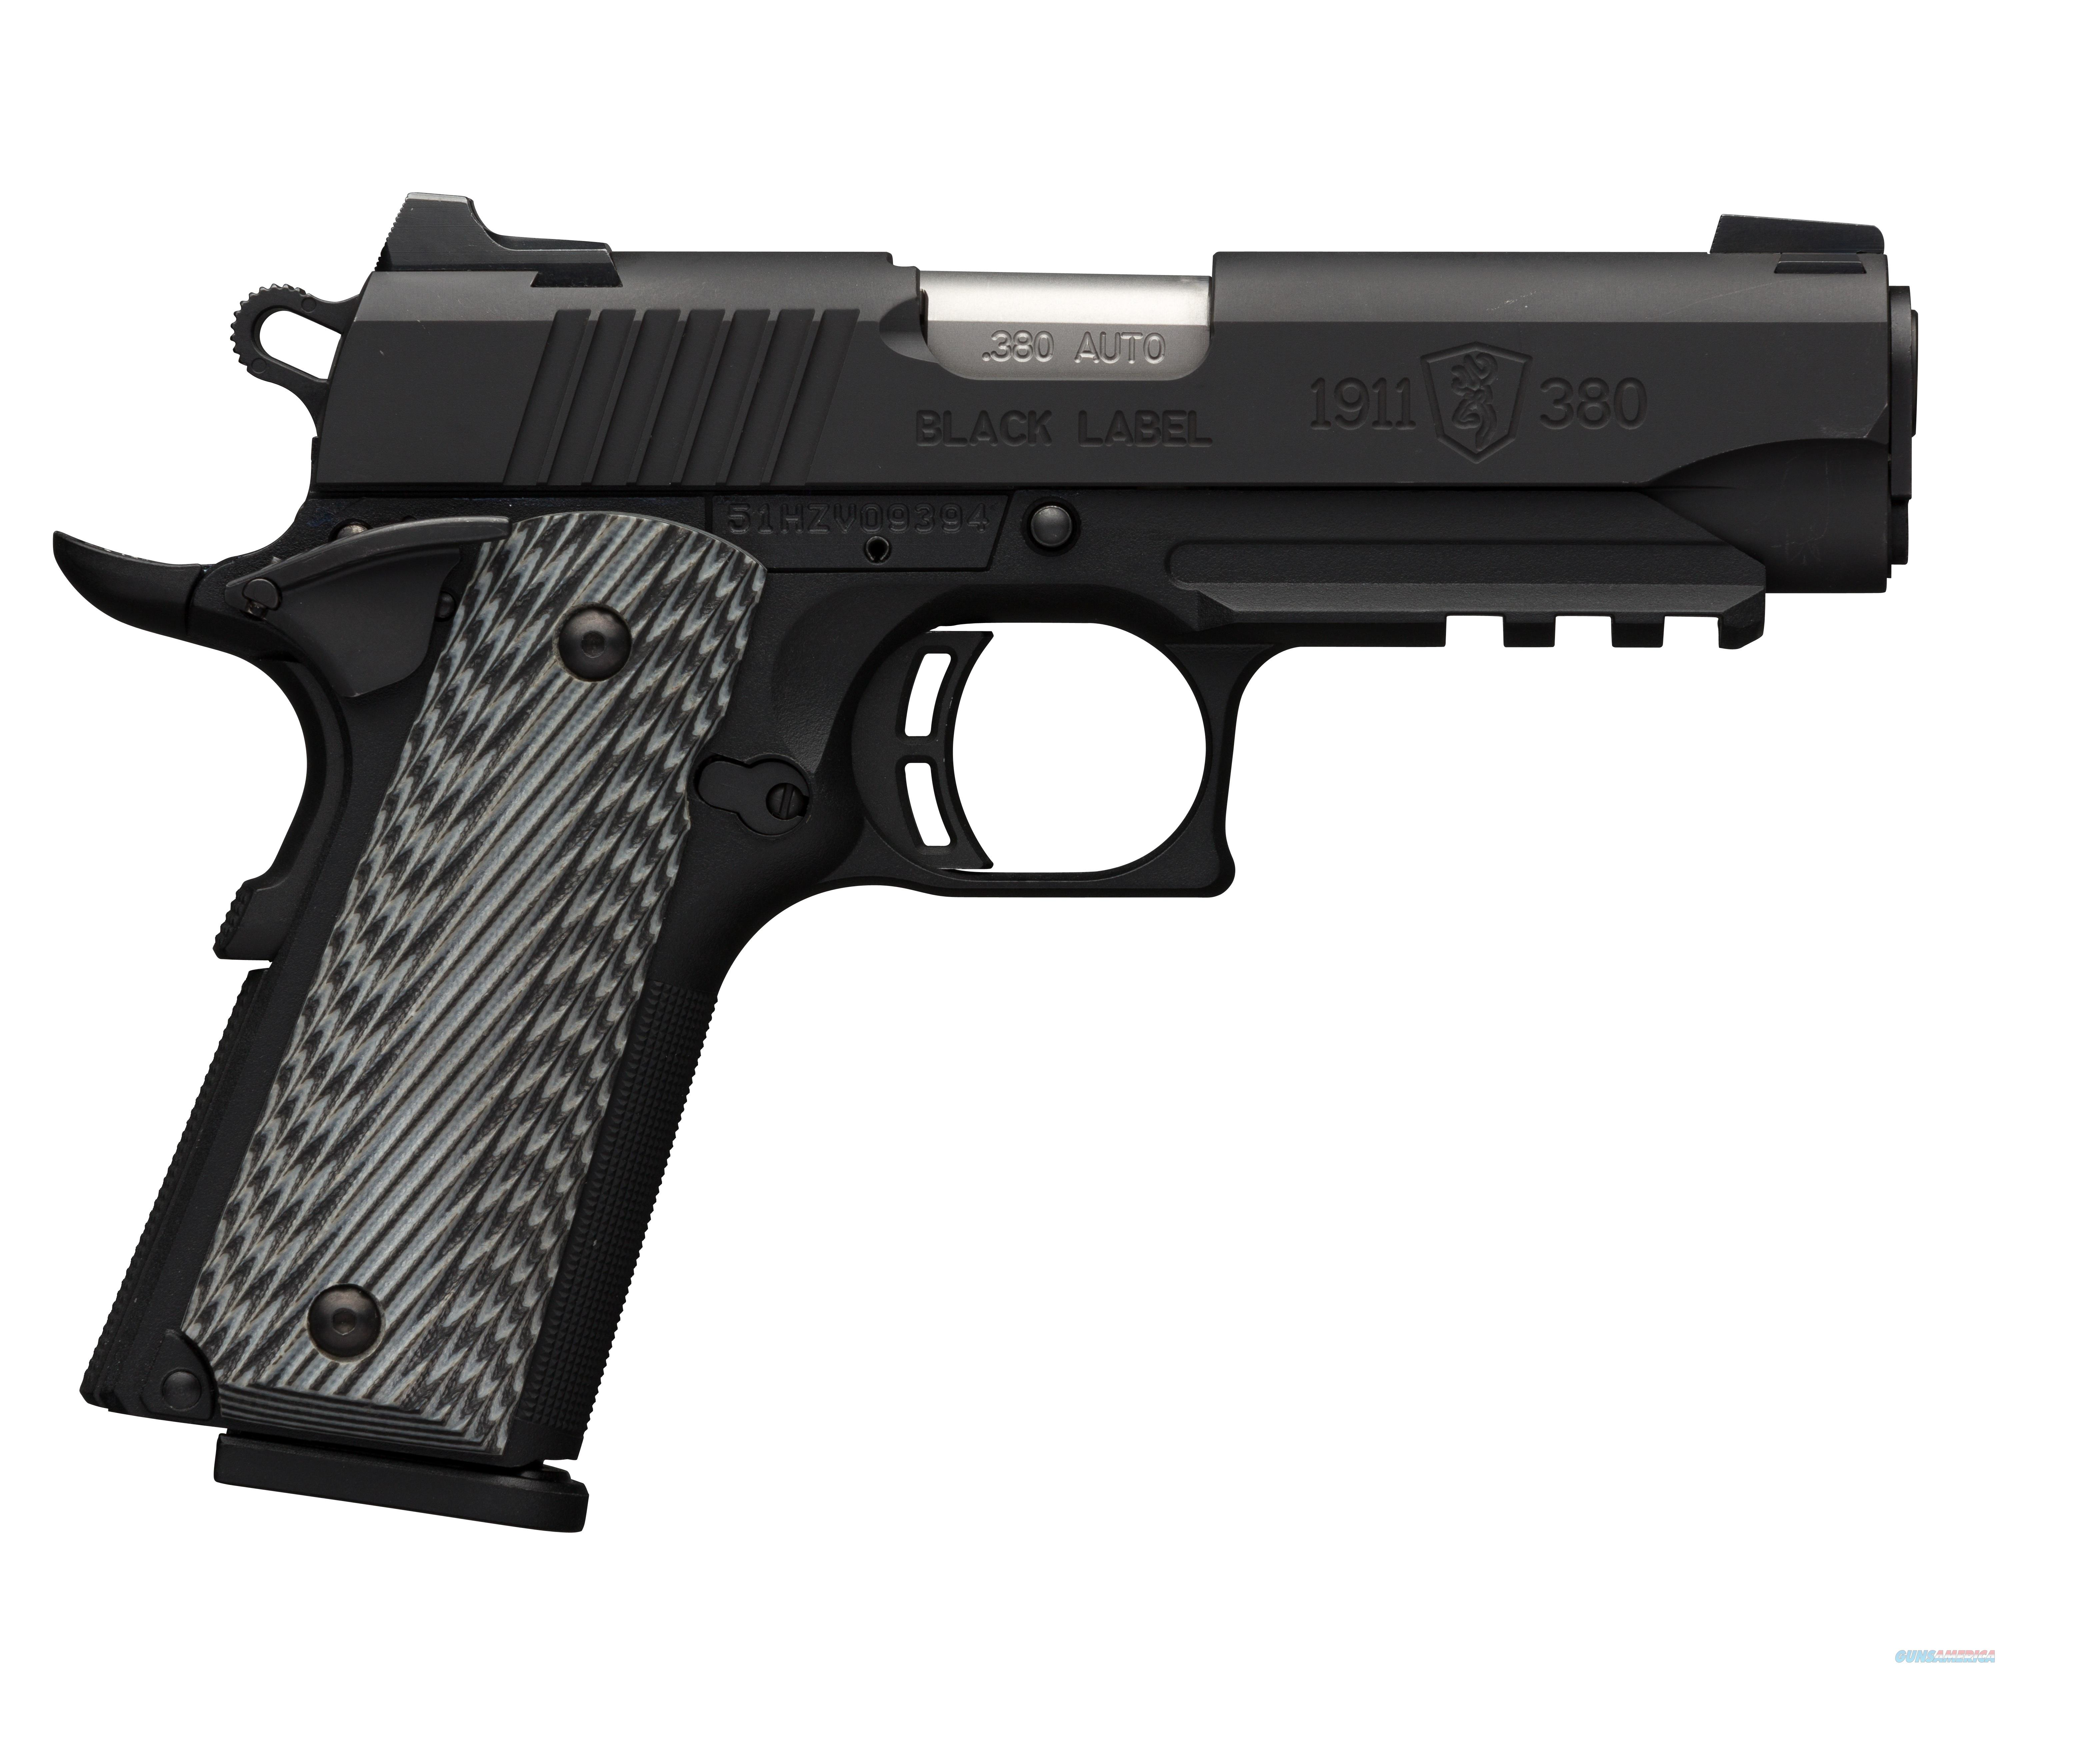 BROWNING 1911-380 BLACK LABEL PRO .380 ACP/AUTO 051911492  Guns > Pistols > Browning Pistols > Other Autos